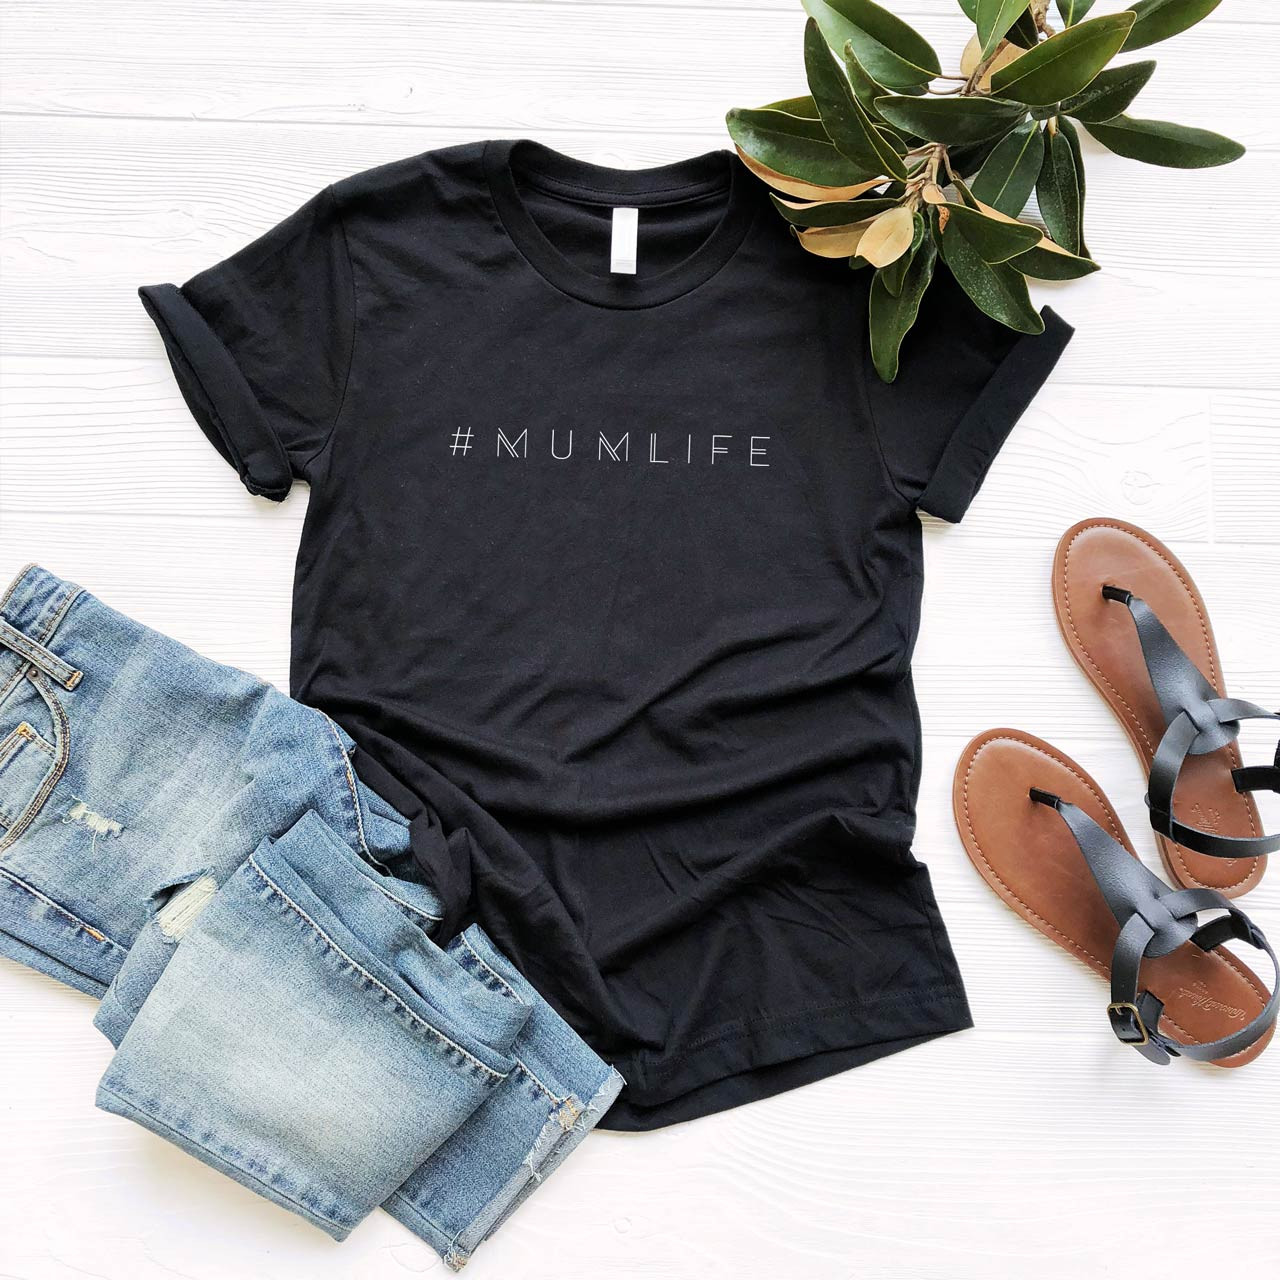 #MUMLIFE Cotton T-Shirt (White on Black) from The Printed Home